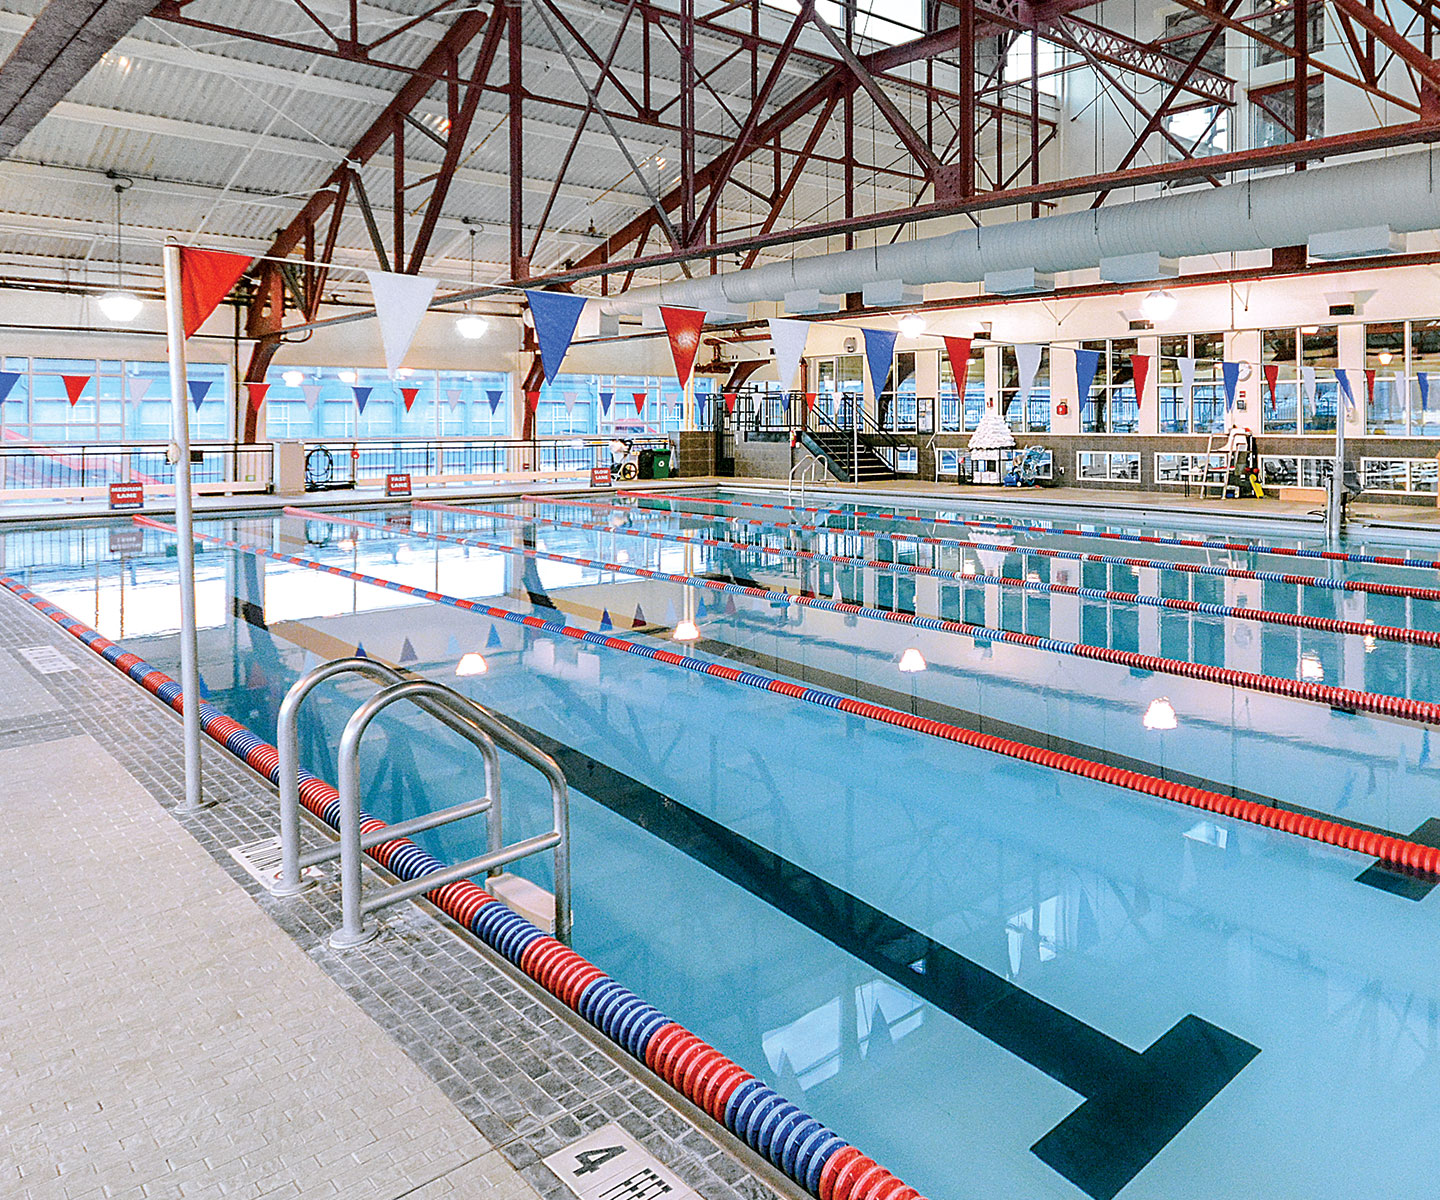 75 foot indoor swimming pool for lap swim and training.